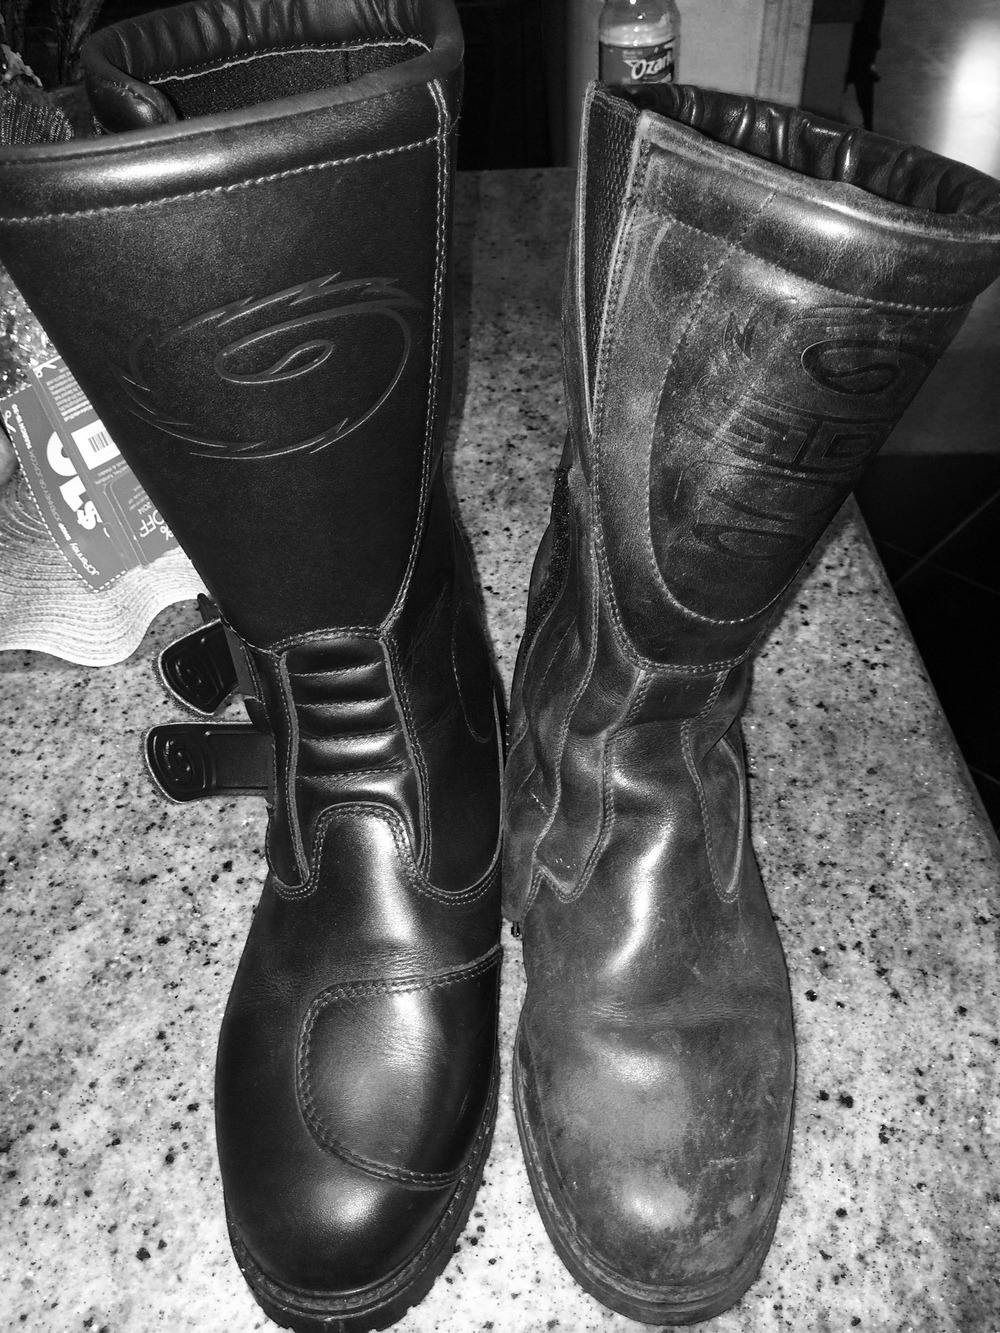 "New ""On Road"" leather boot on left and my 10 year old Lorica boot on the right!"